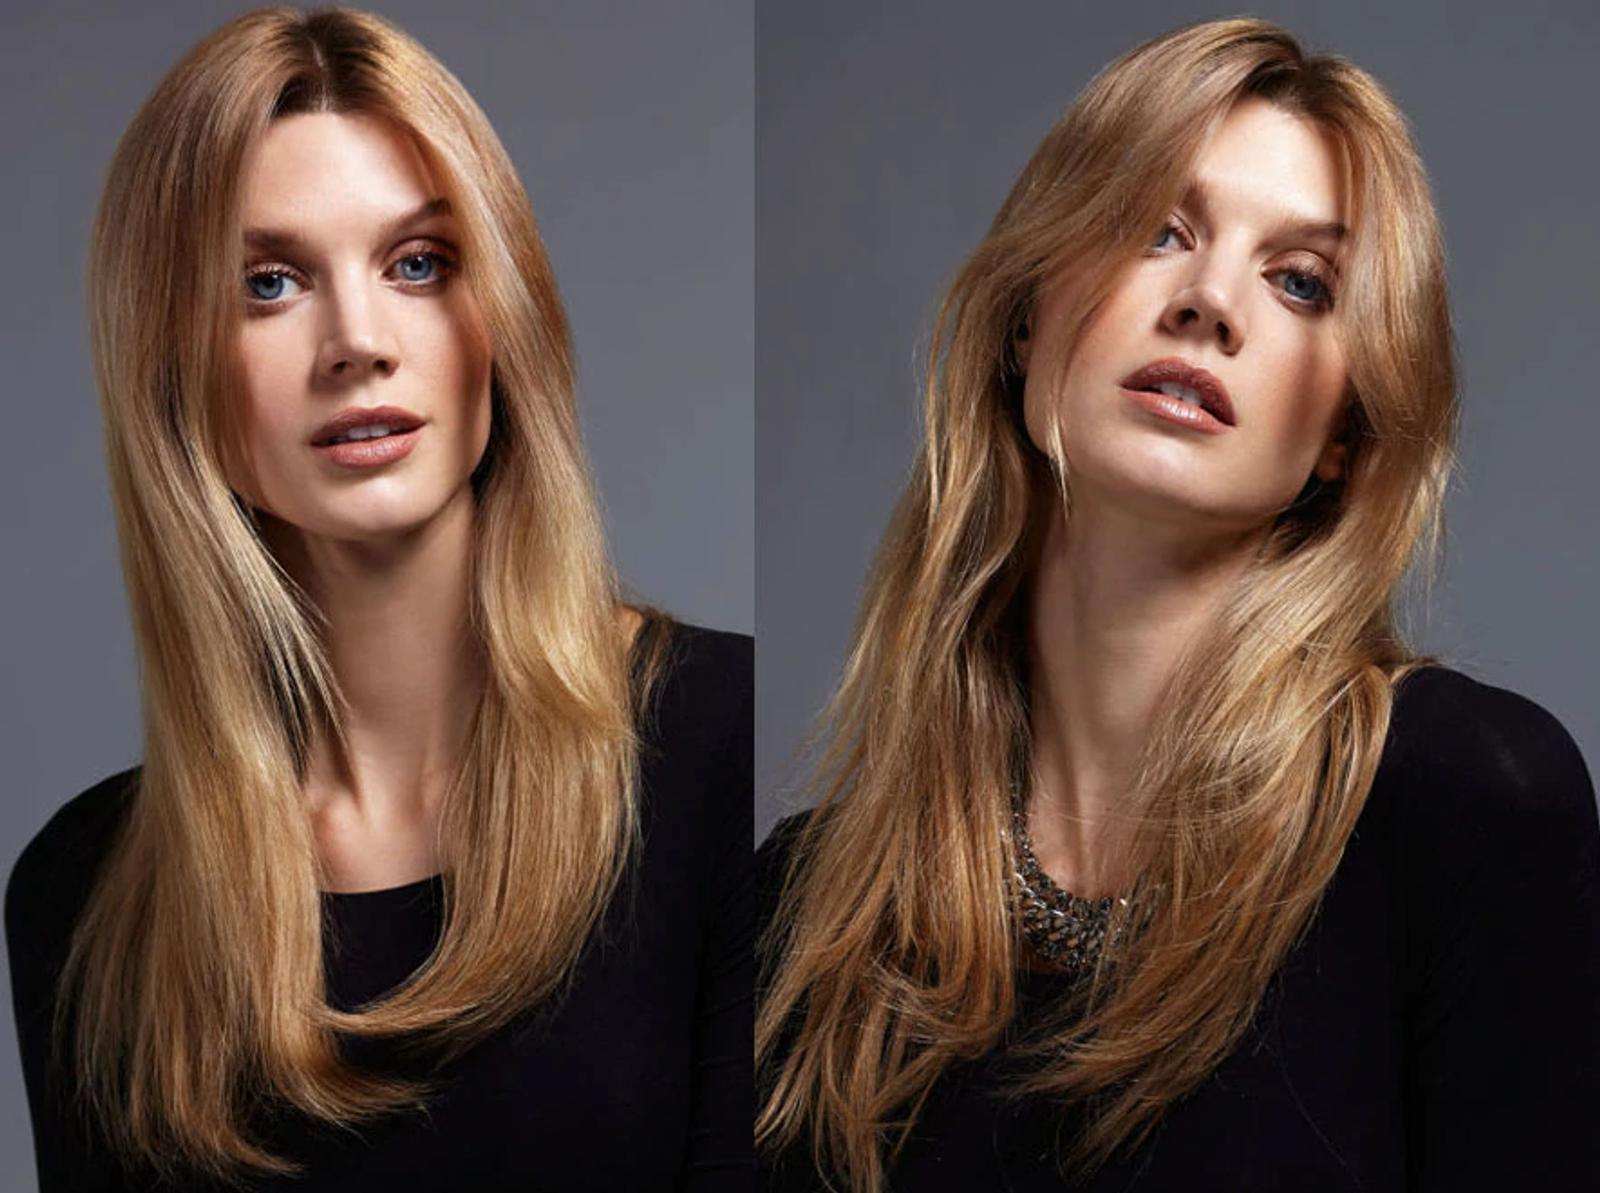 Image of Model with Smooth Hair and Image of Model with Unbrushed Hair